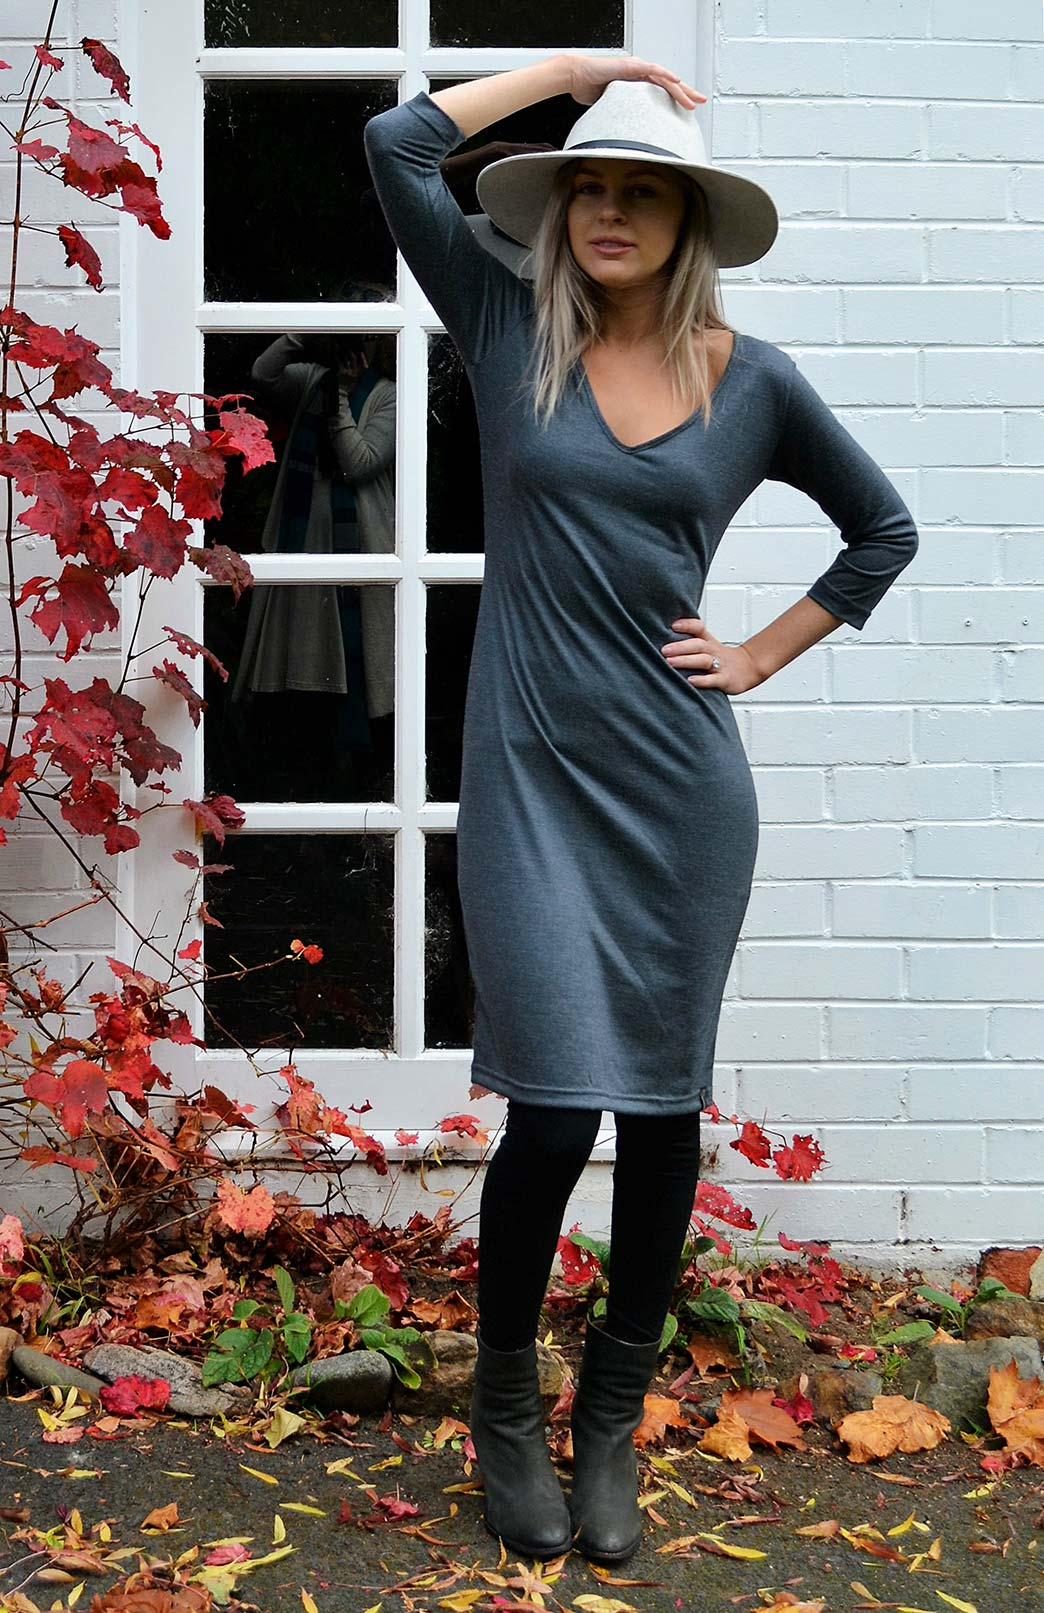 V-Neck 3/4 Sleeve Dress - Women's Charcoal Grey Merino Wool V-Neck Classic Dress - Smitten Merino Tasmania Australia